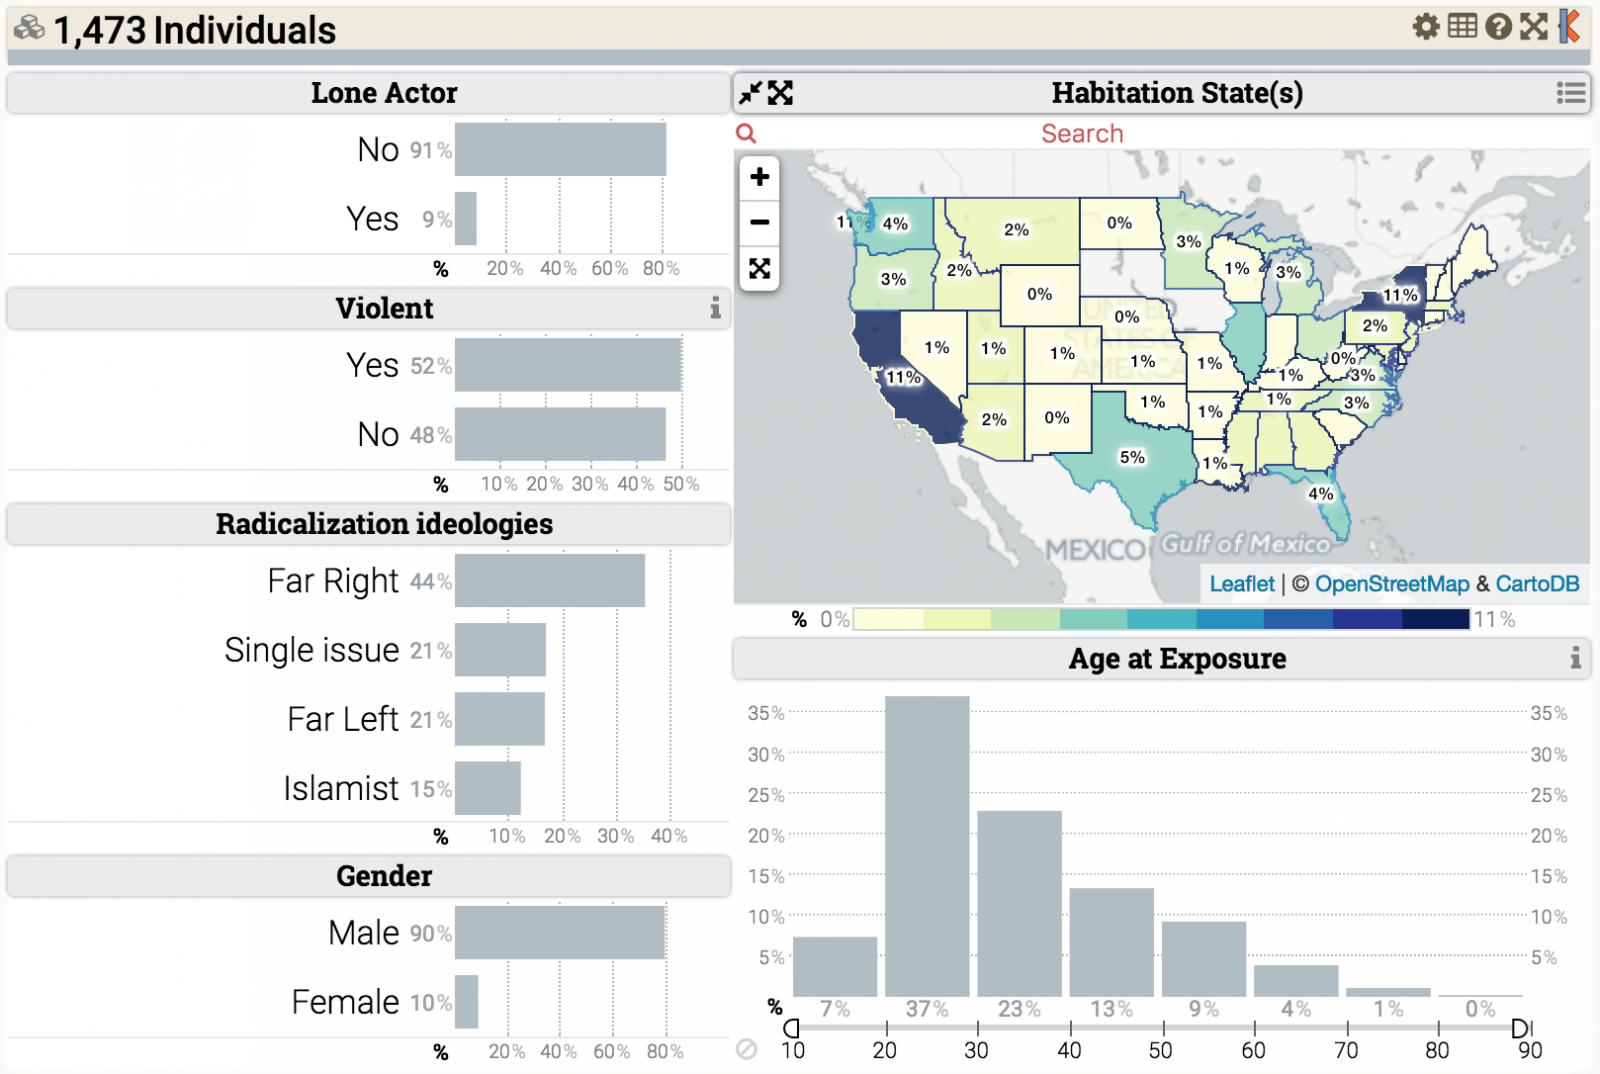 Profiles Of Individual Radicalization In The United States PIRUS - Us Maps Tools For Chrome Os